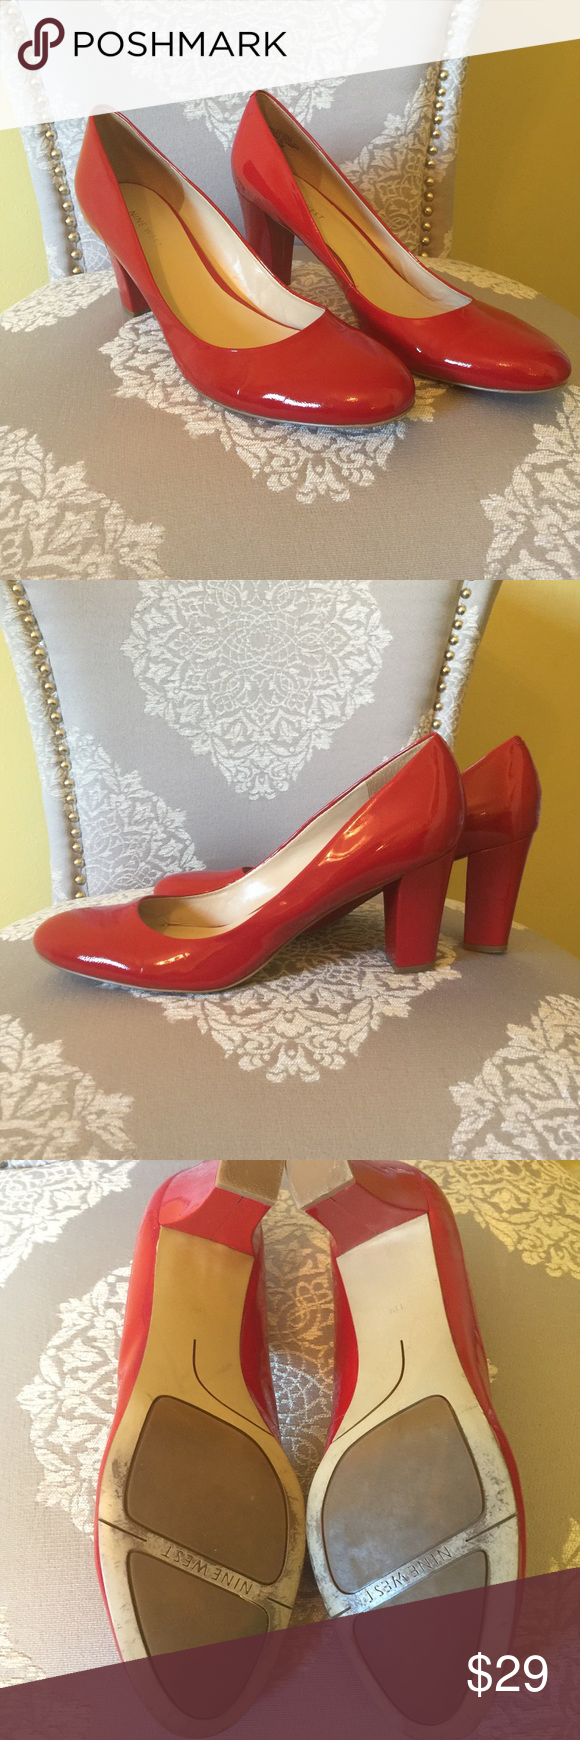 "Nine West Red Patent Leather Pumps 👠 👠👠👠 PERFECT FOR VALENTINES DAY ❤️❤️❤️Hot Red Patent Leather Pumps, worn only 1 time and in excellent condition. 3"" in heel and padded footbed. I just can't wear heels anymore so I'm cleaning out the closet!! Nine West Shoes Heels"